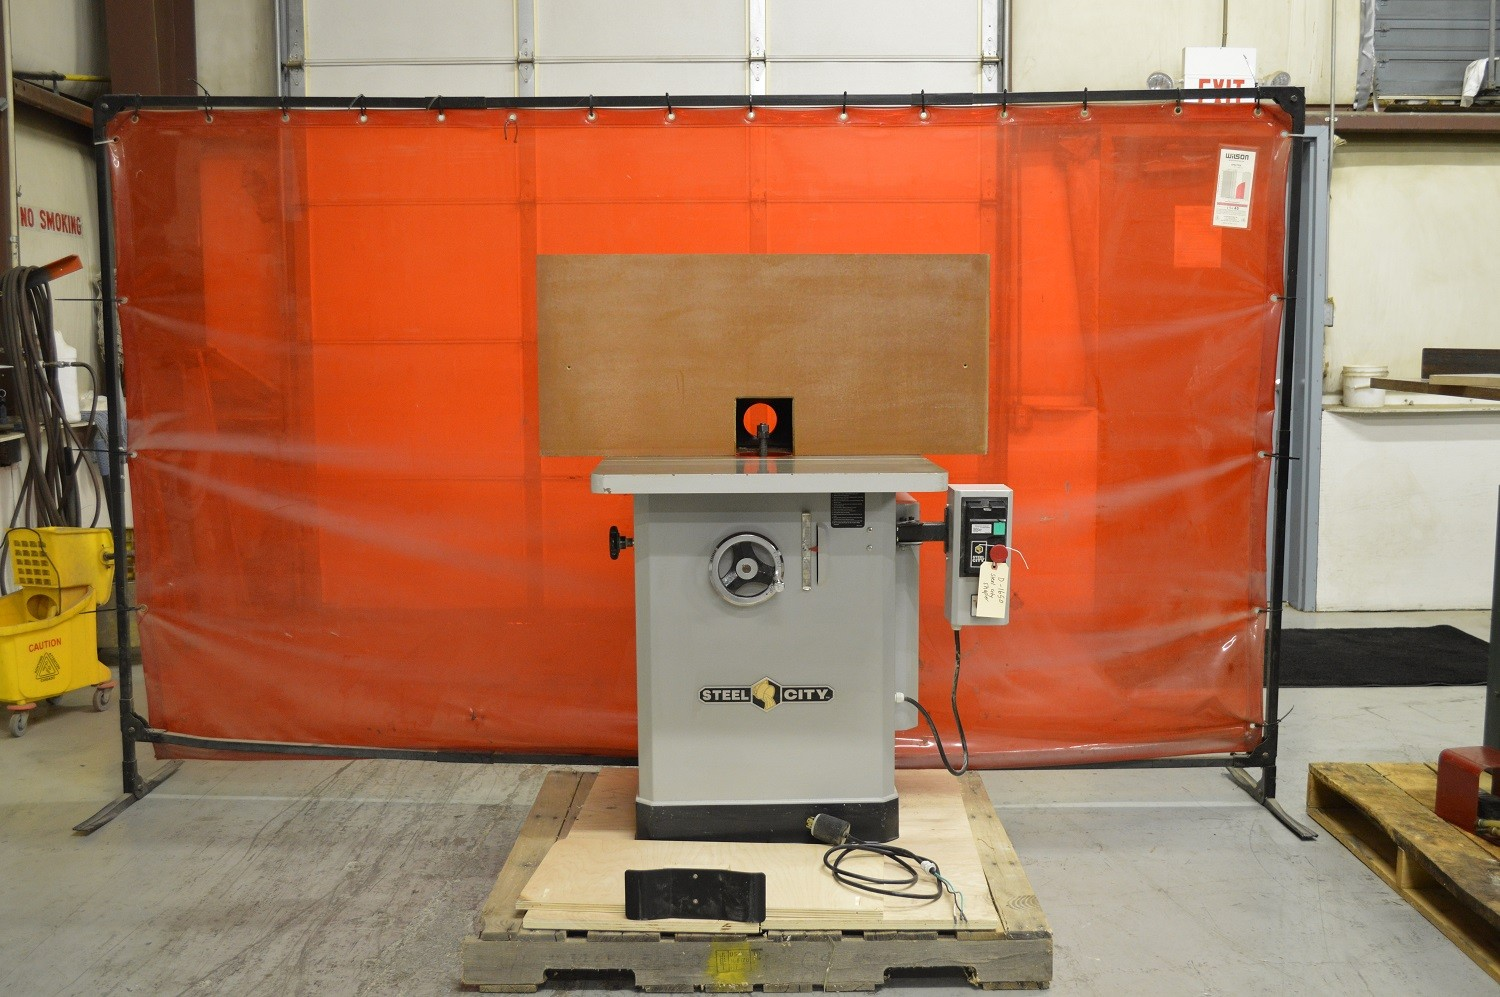 Used Steel CIty Spindle Shaper - Model: 48115 - Photo 1